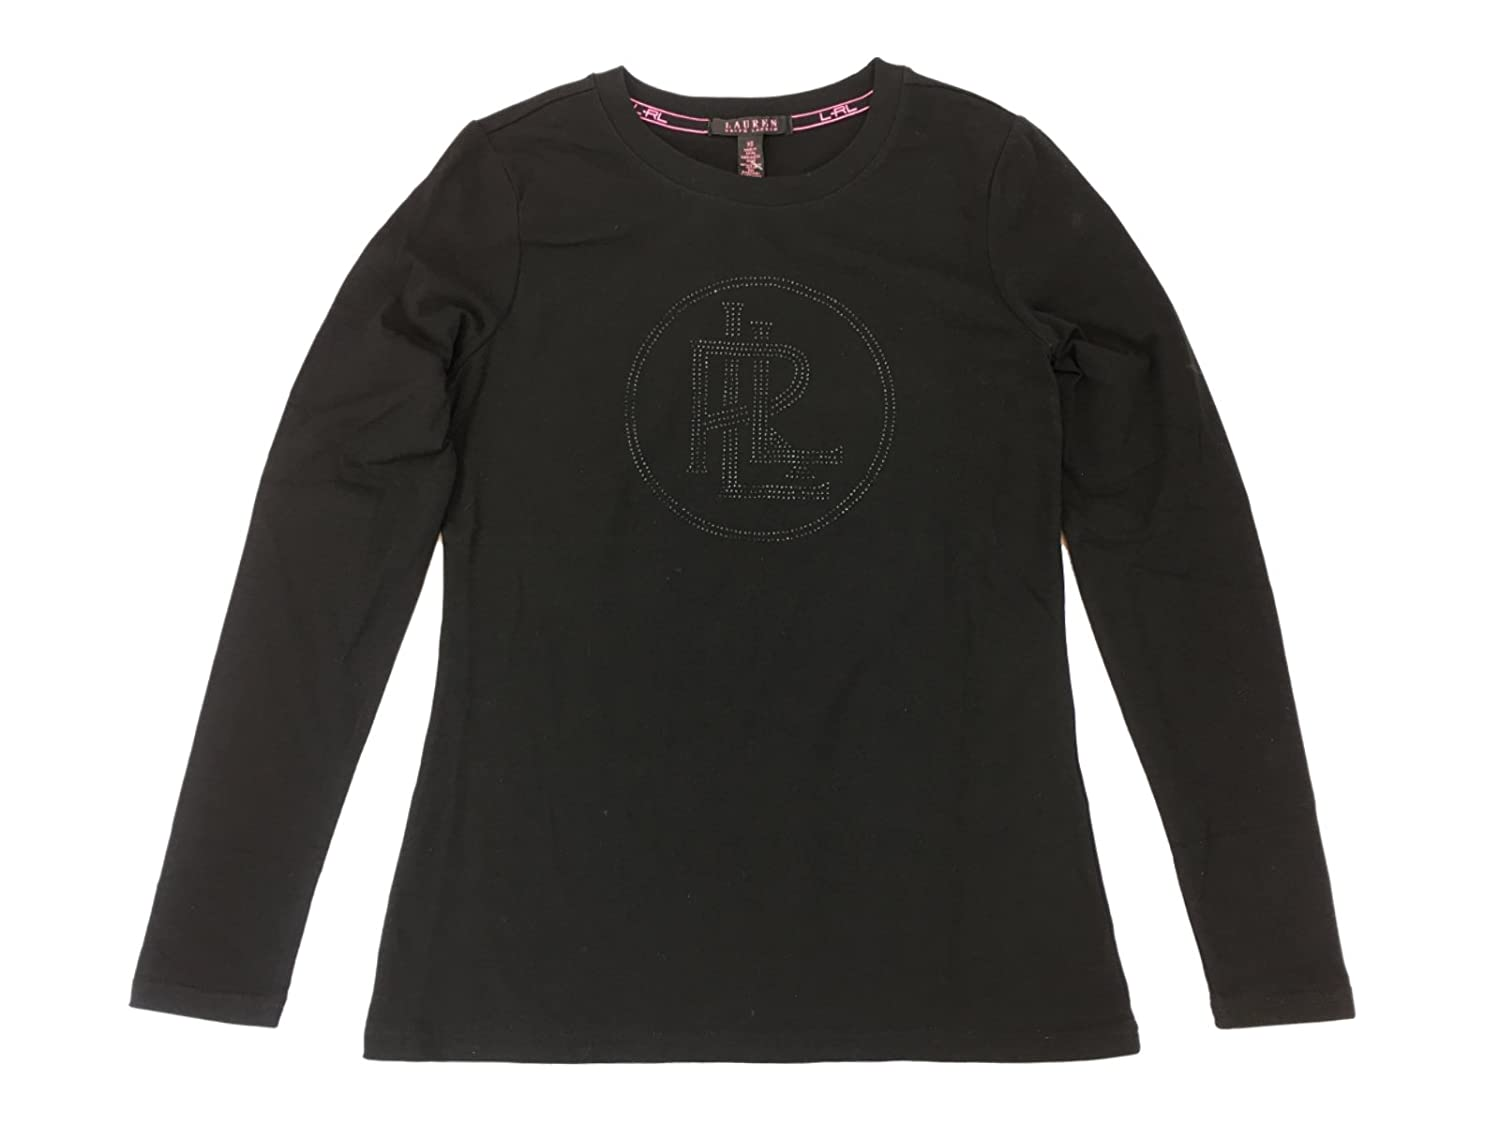 e0e792fea Top1  Lauren by Ralph Lauren Women s Lauren Pink Long Sleeve Tonal Bling  Logo Shirt